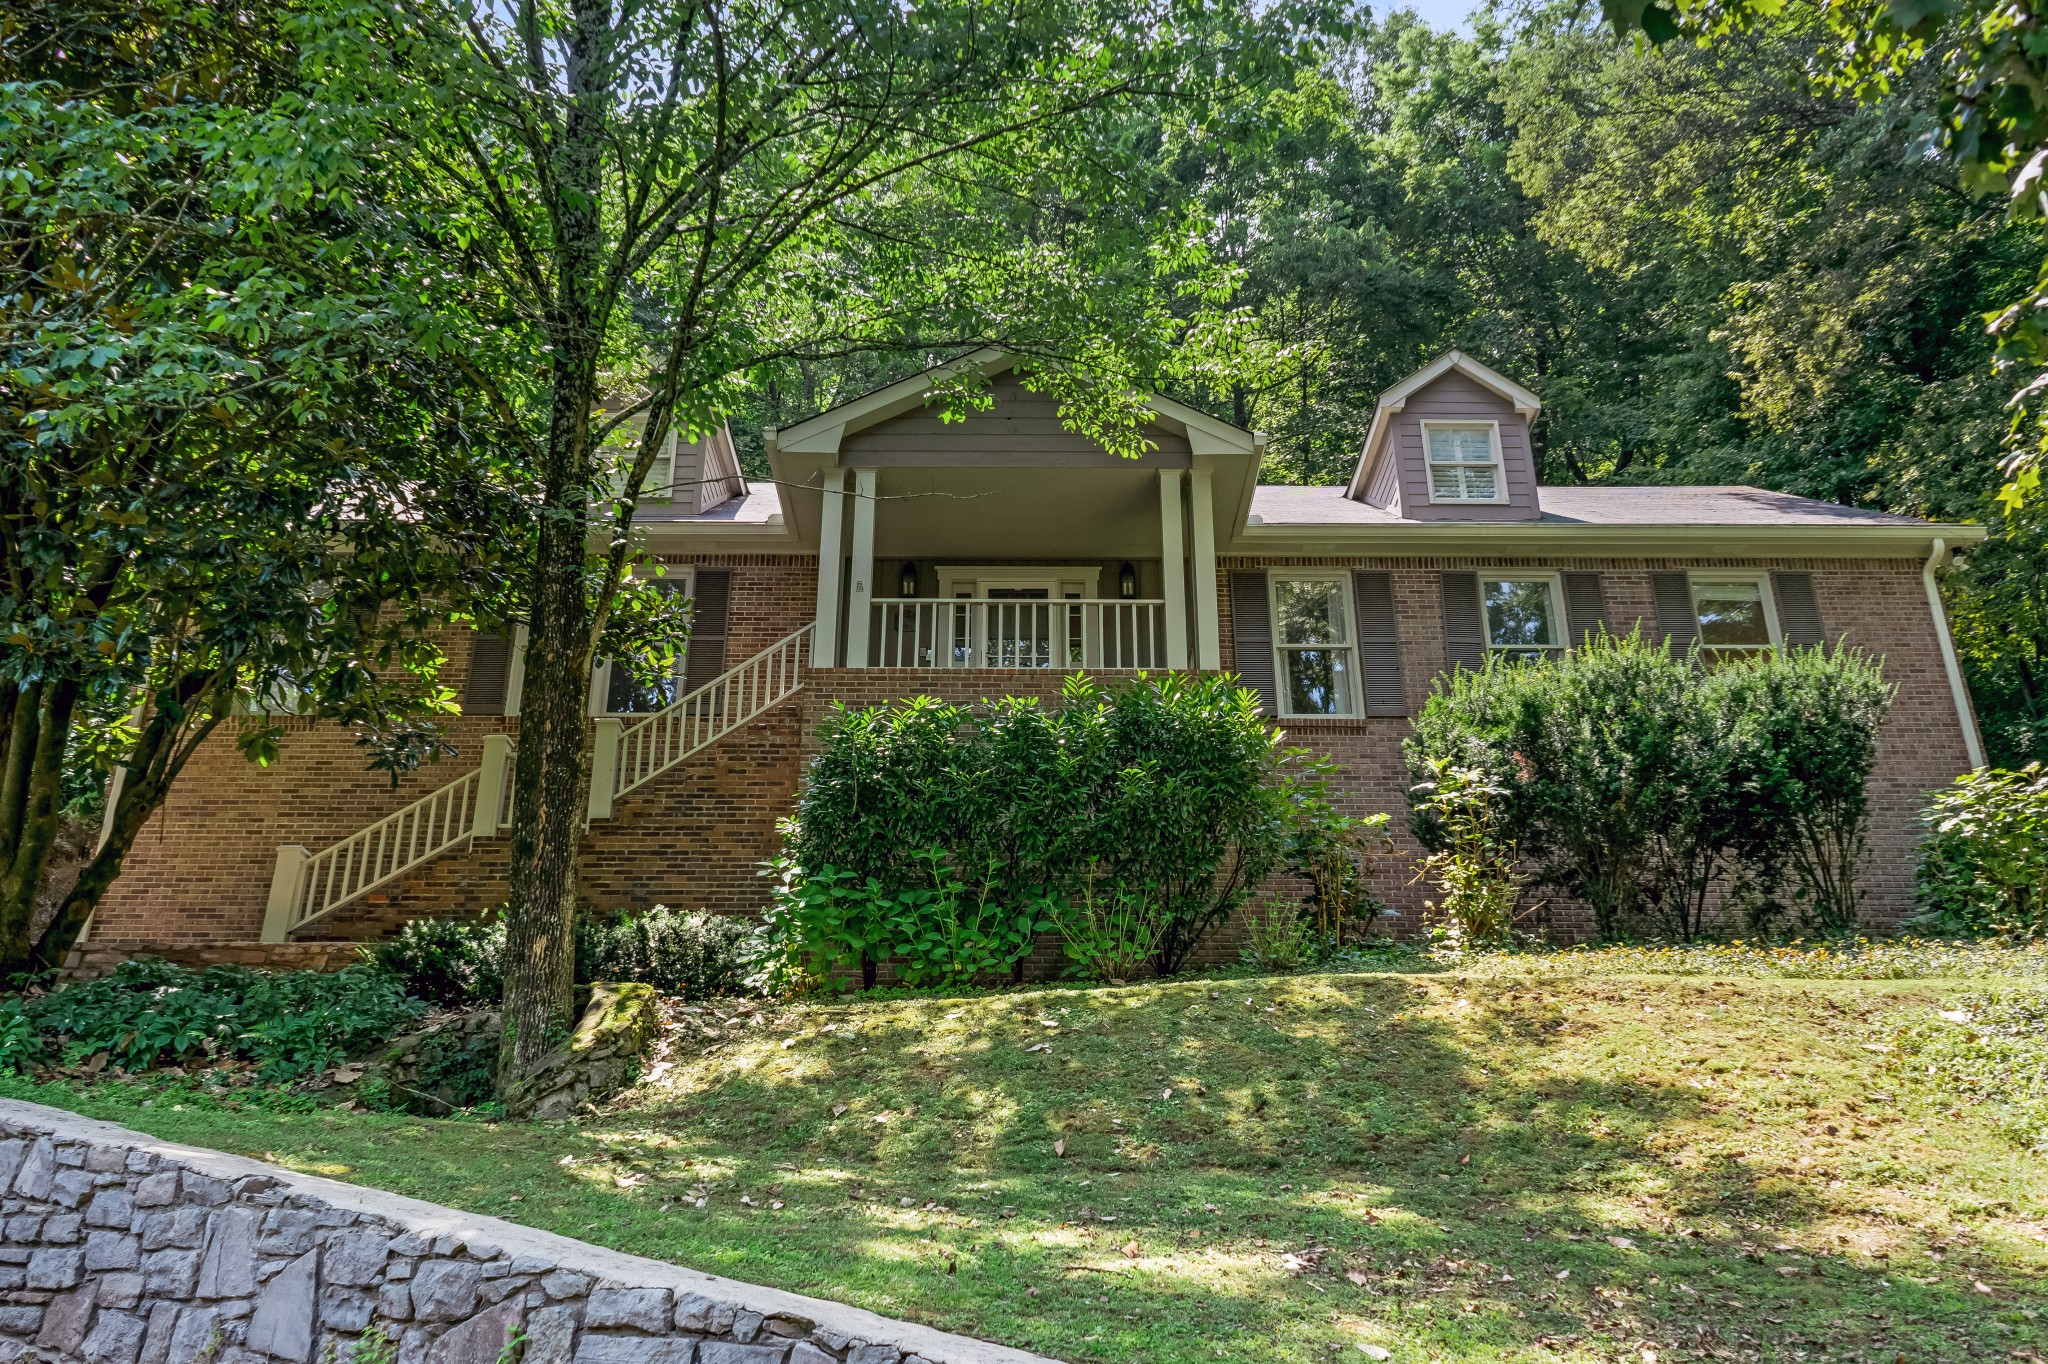 Beautiful hillside home in the heart of Forest Hills! Mature trees on a 1.3-acre lot, walking distance to Radnor Lake State Park. Sprawling floor plan with hardwood floors and beautiful natural light throughout. Five bedrooms with two Primary Bedroom options (fireplace with each). Back patio oasis with fire pit and separate screened-in porch, perfect for indoor/outdoor entertaining. Private location at the end of a quiet, established cul-de-sac. Don't miss this!